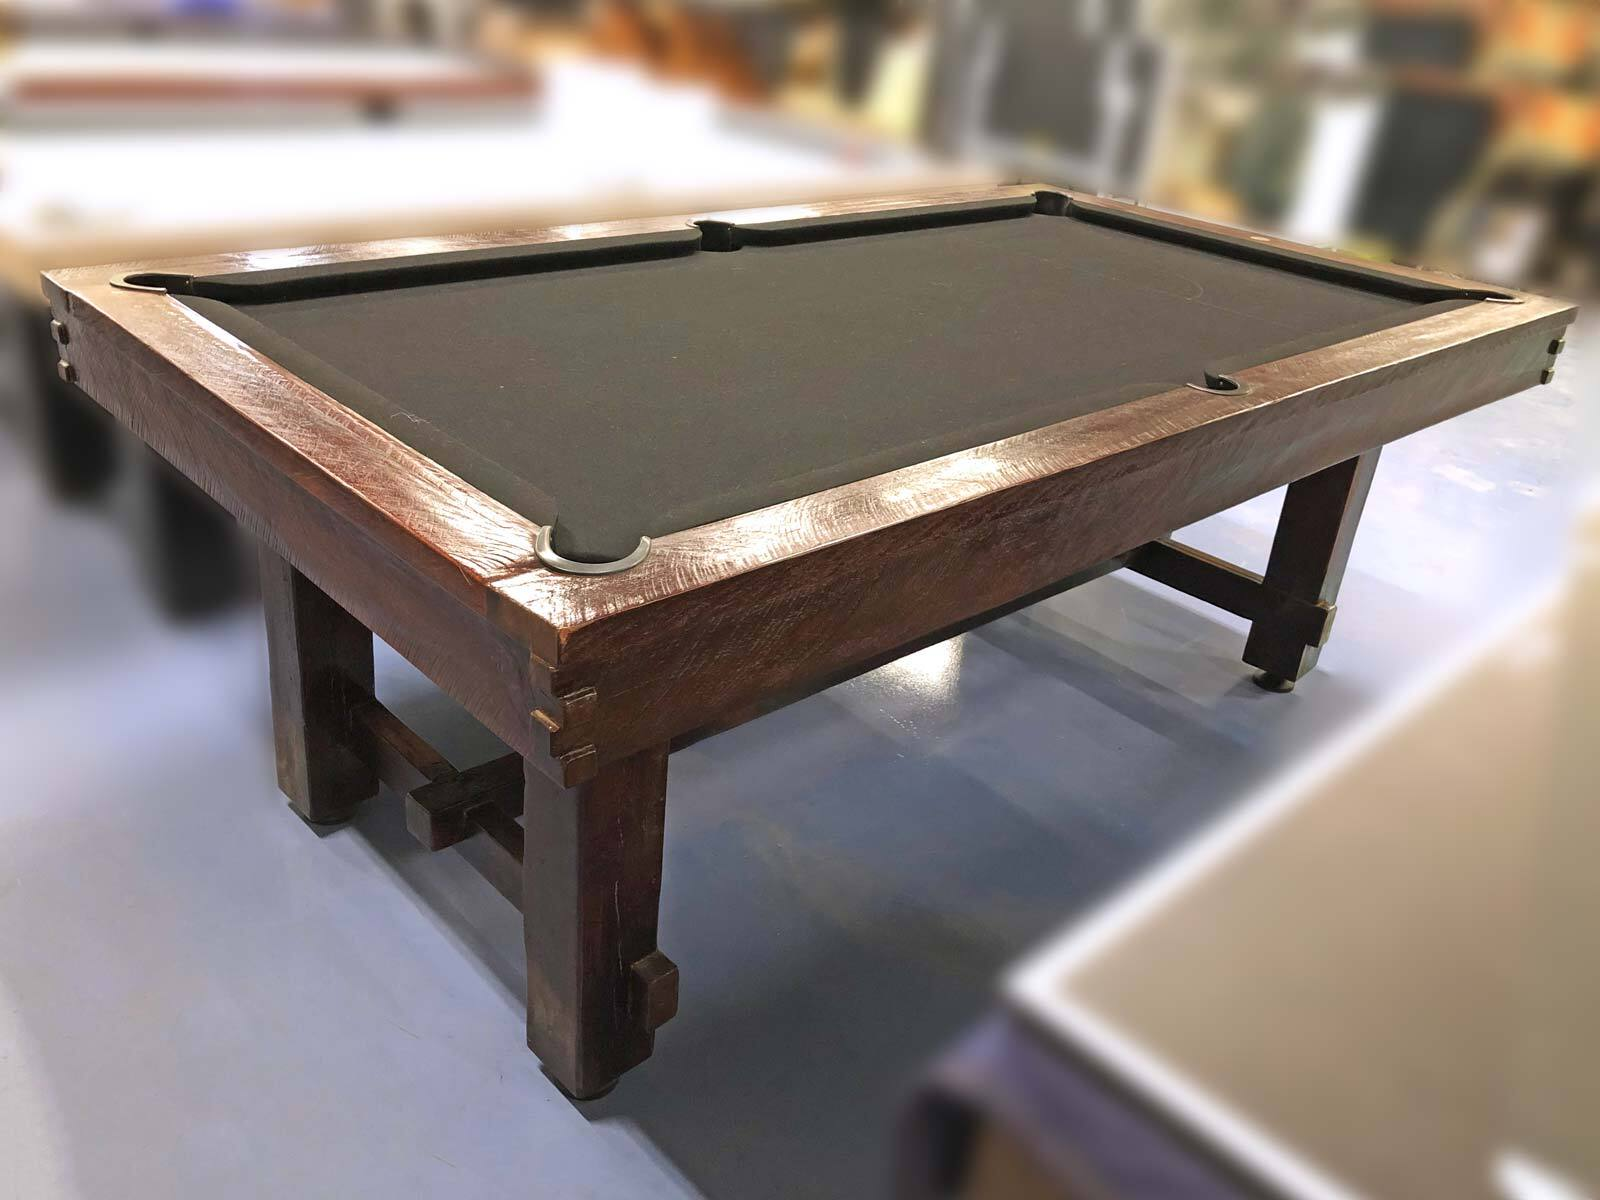 Melbourne Special - 7 Foot Slate Retro Rustic Pool Table (Floor Table)